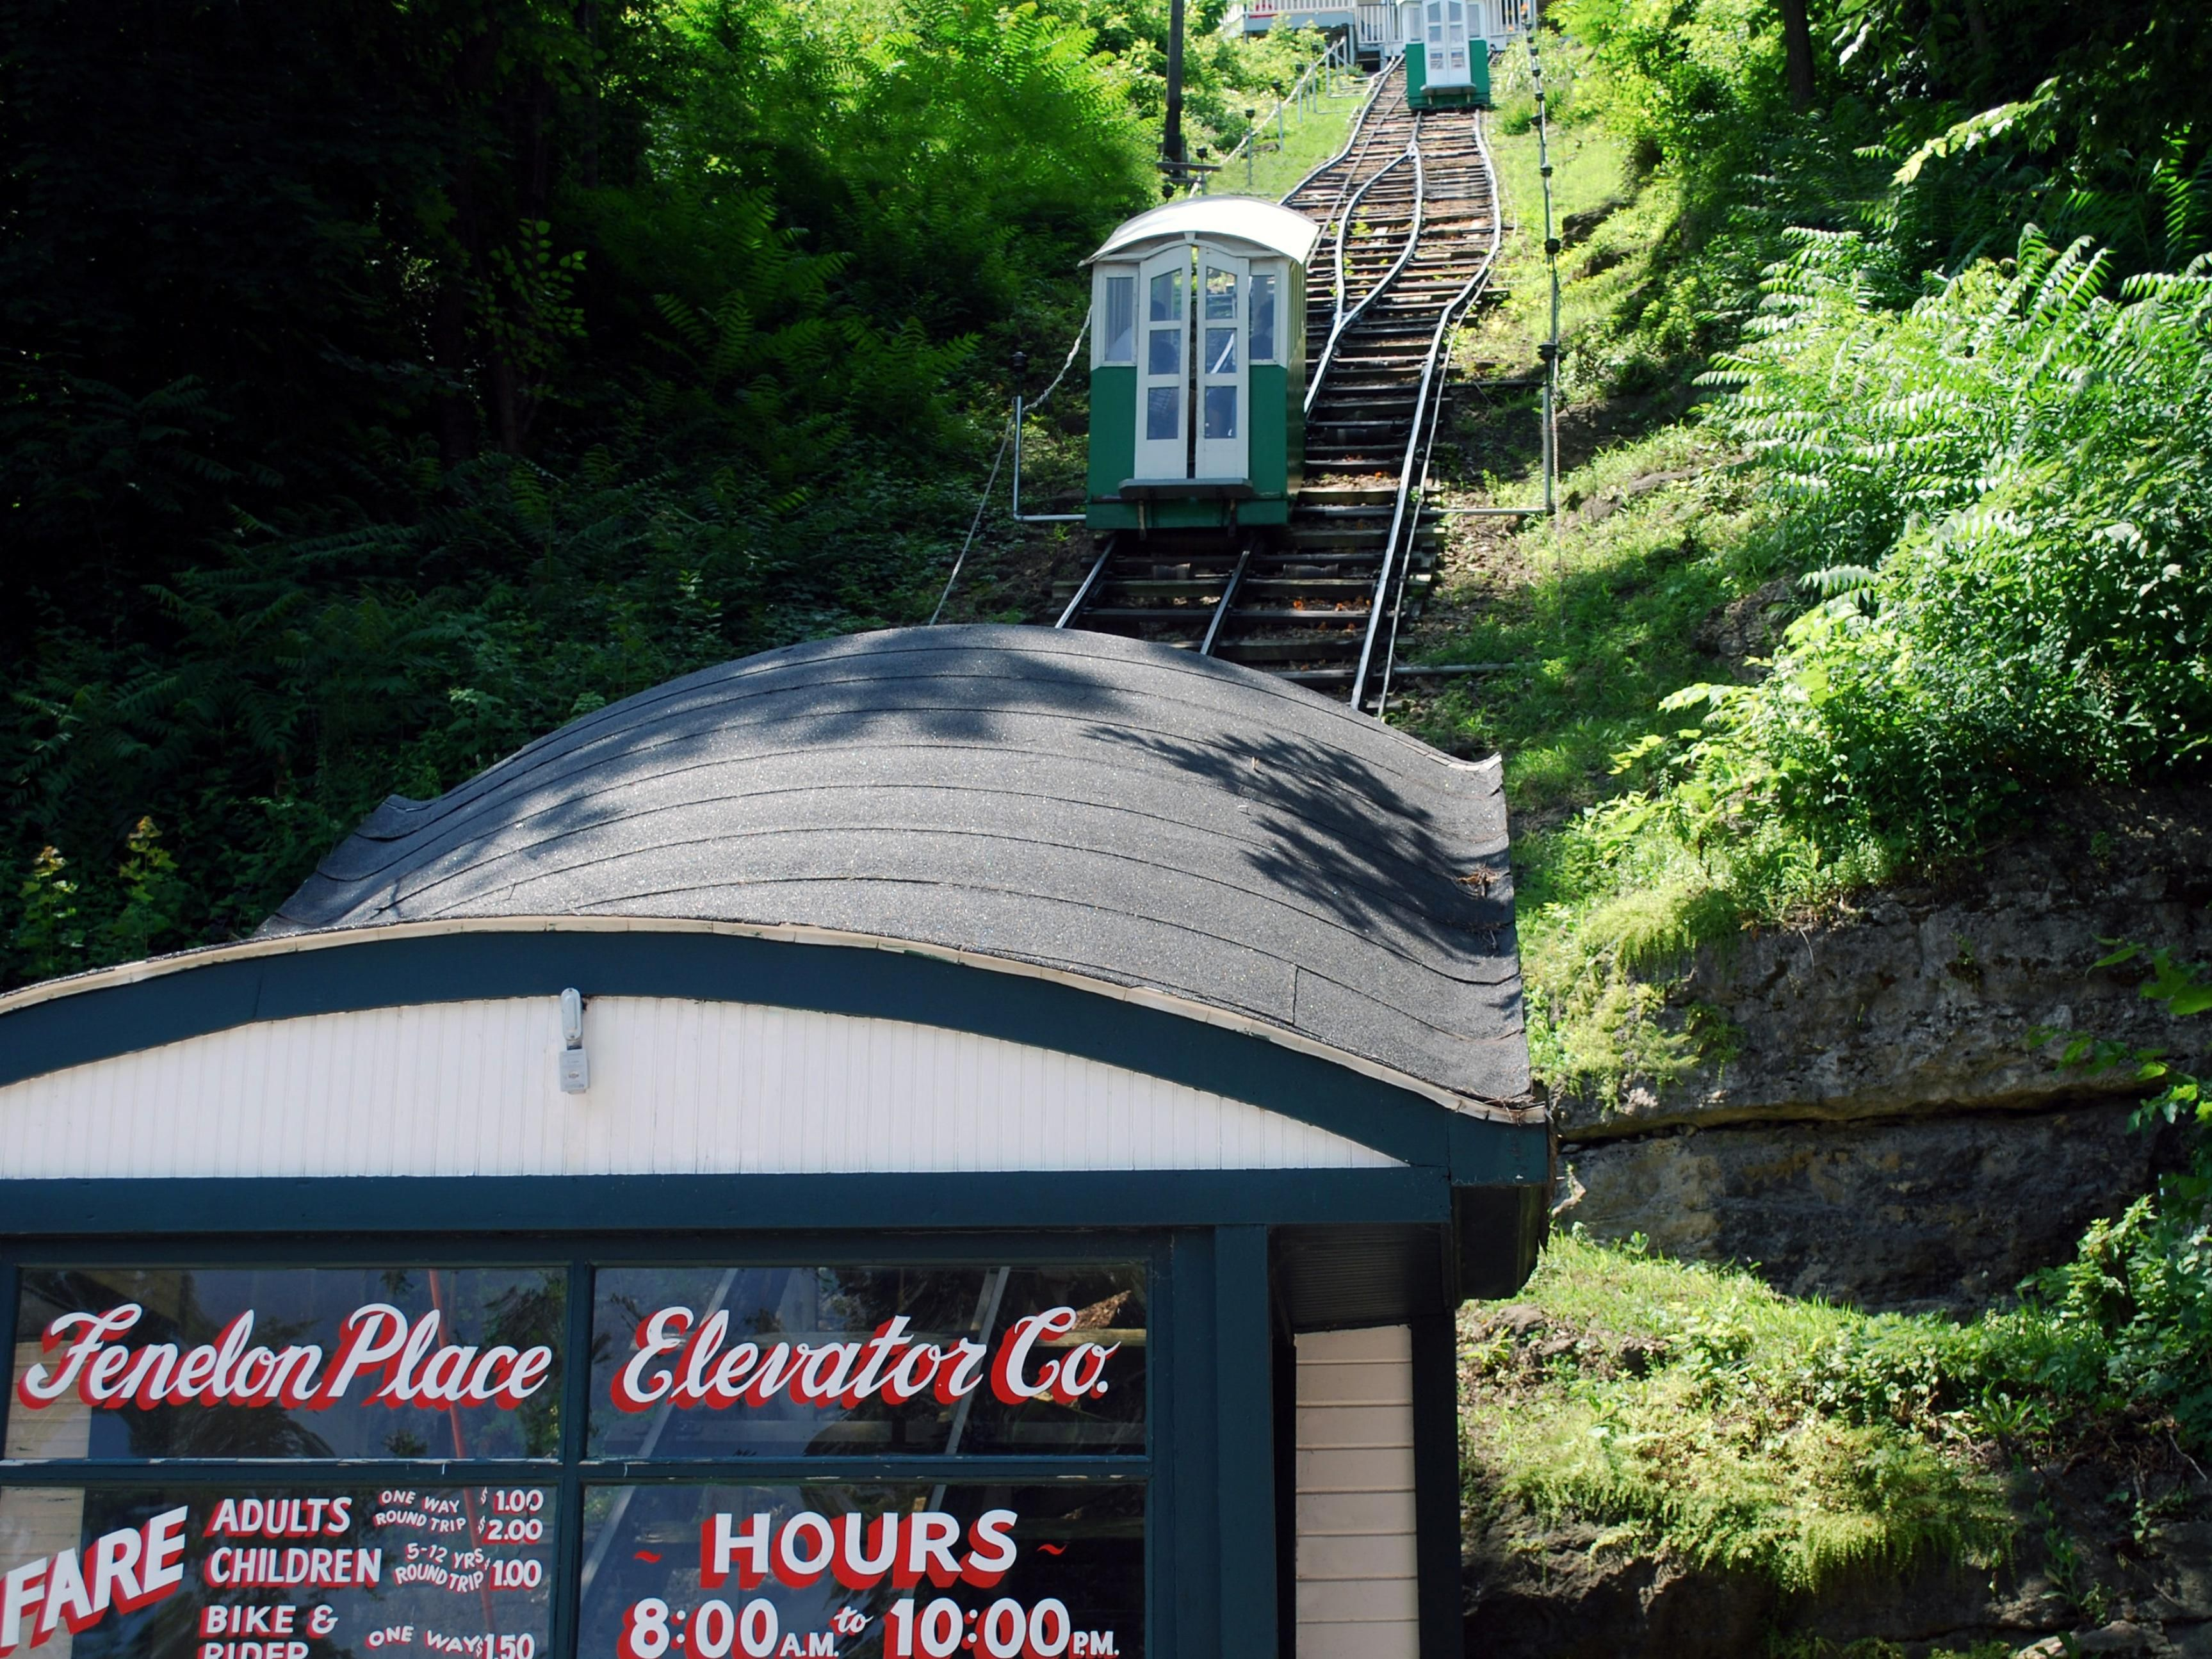 Ride the Fenelon Place Elevator to the top of the bluff